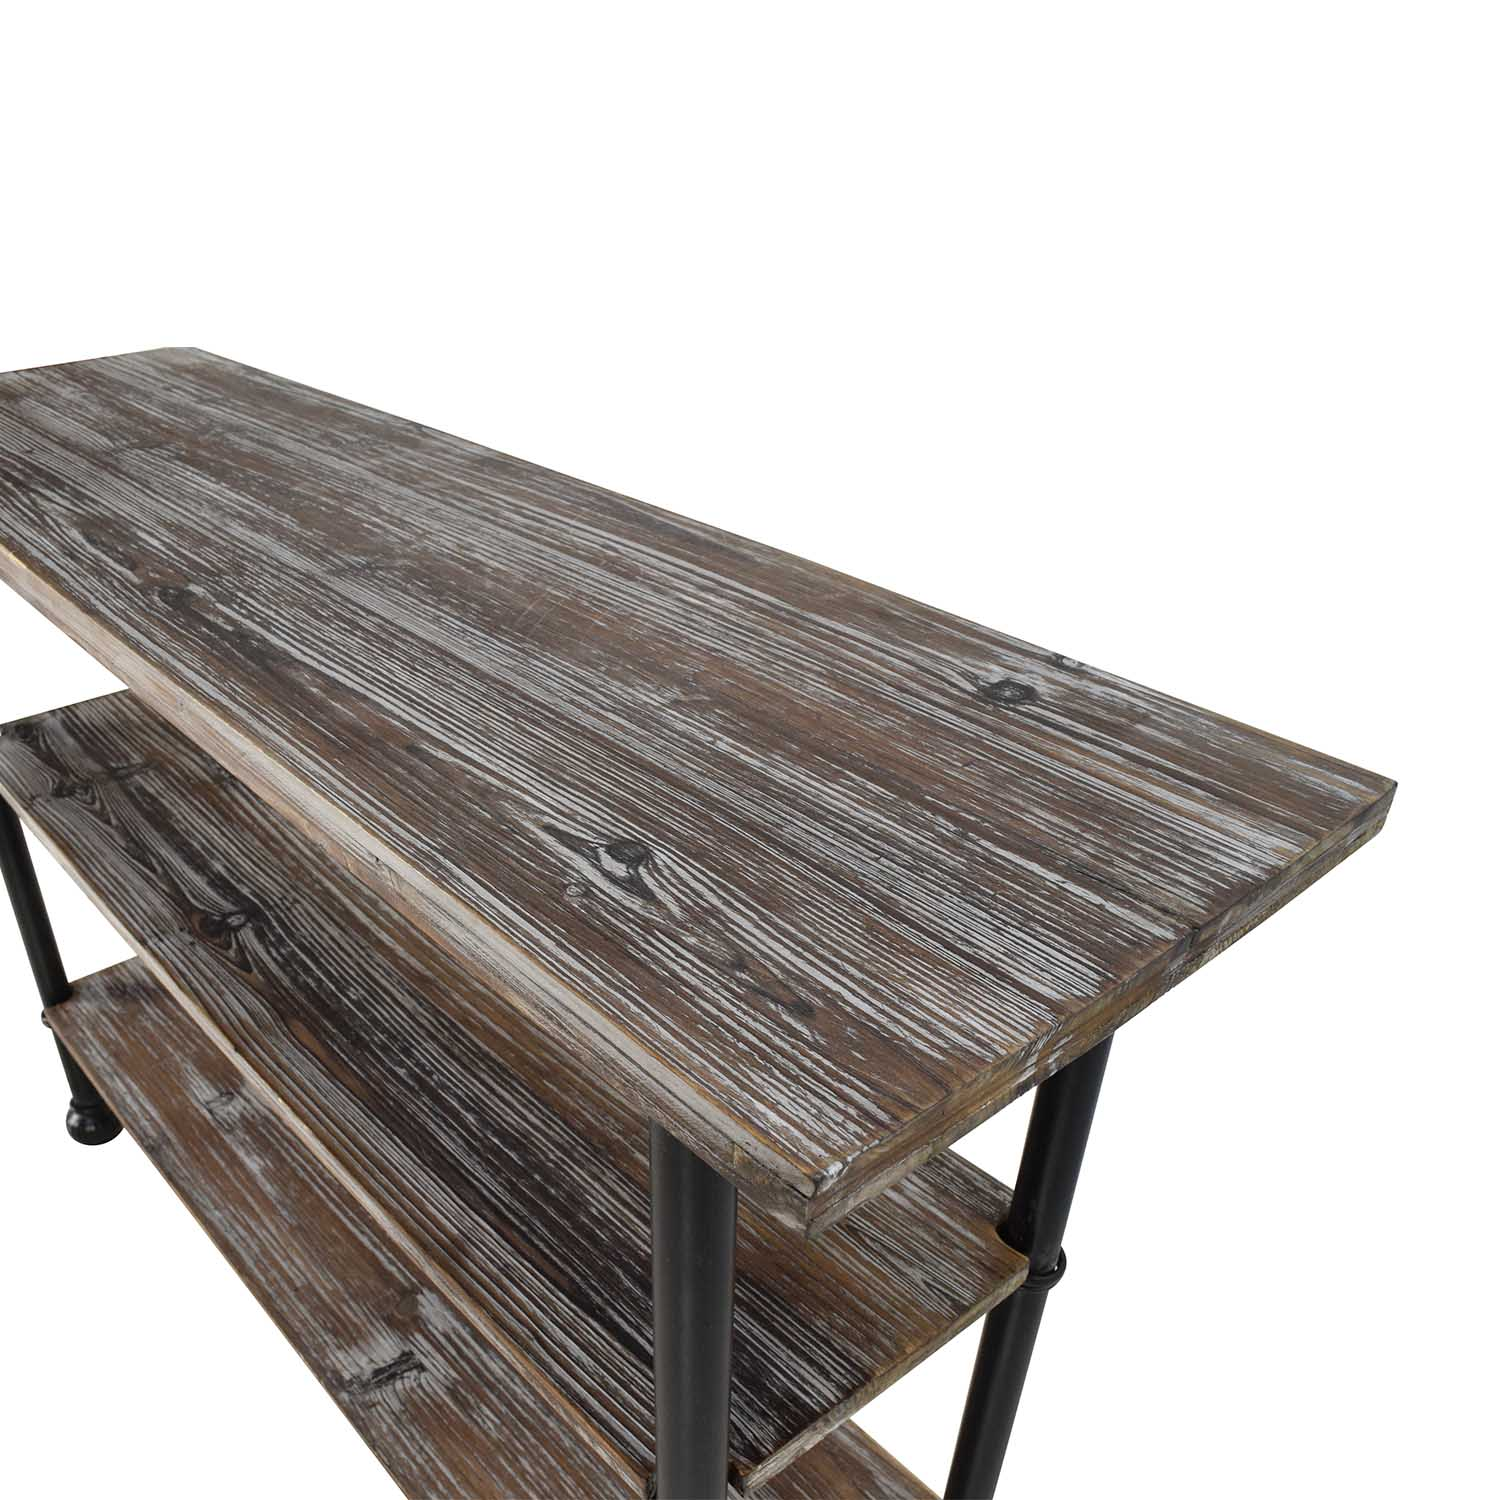 Unknown Rustic Brown Wood 3 Tier Shelf Table coupon